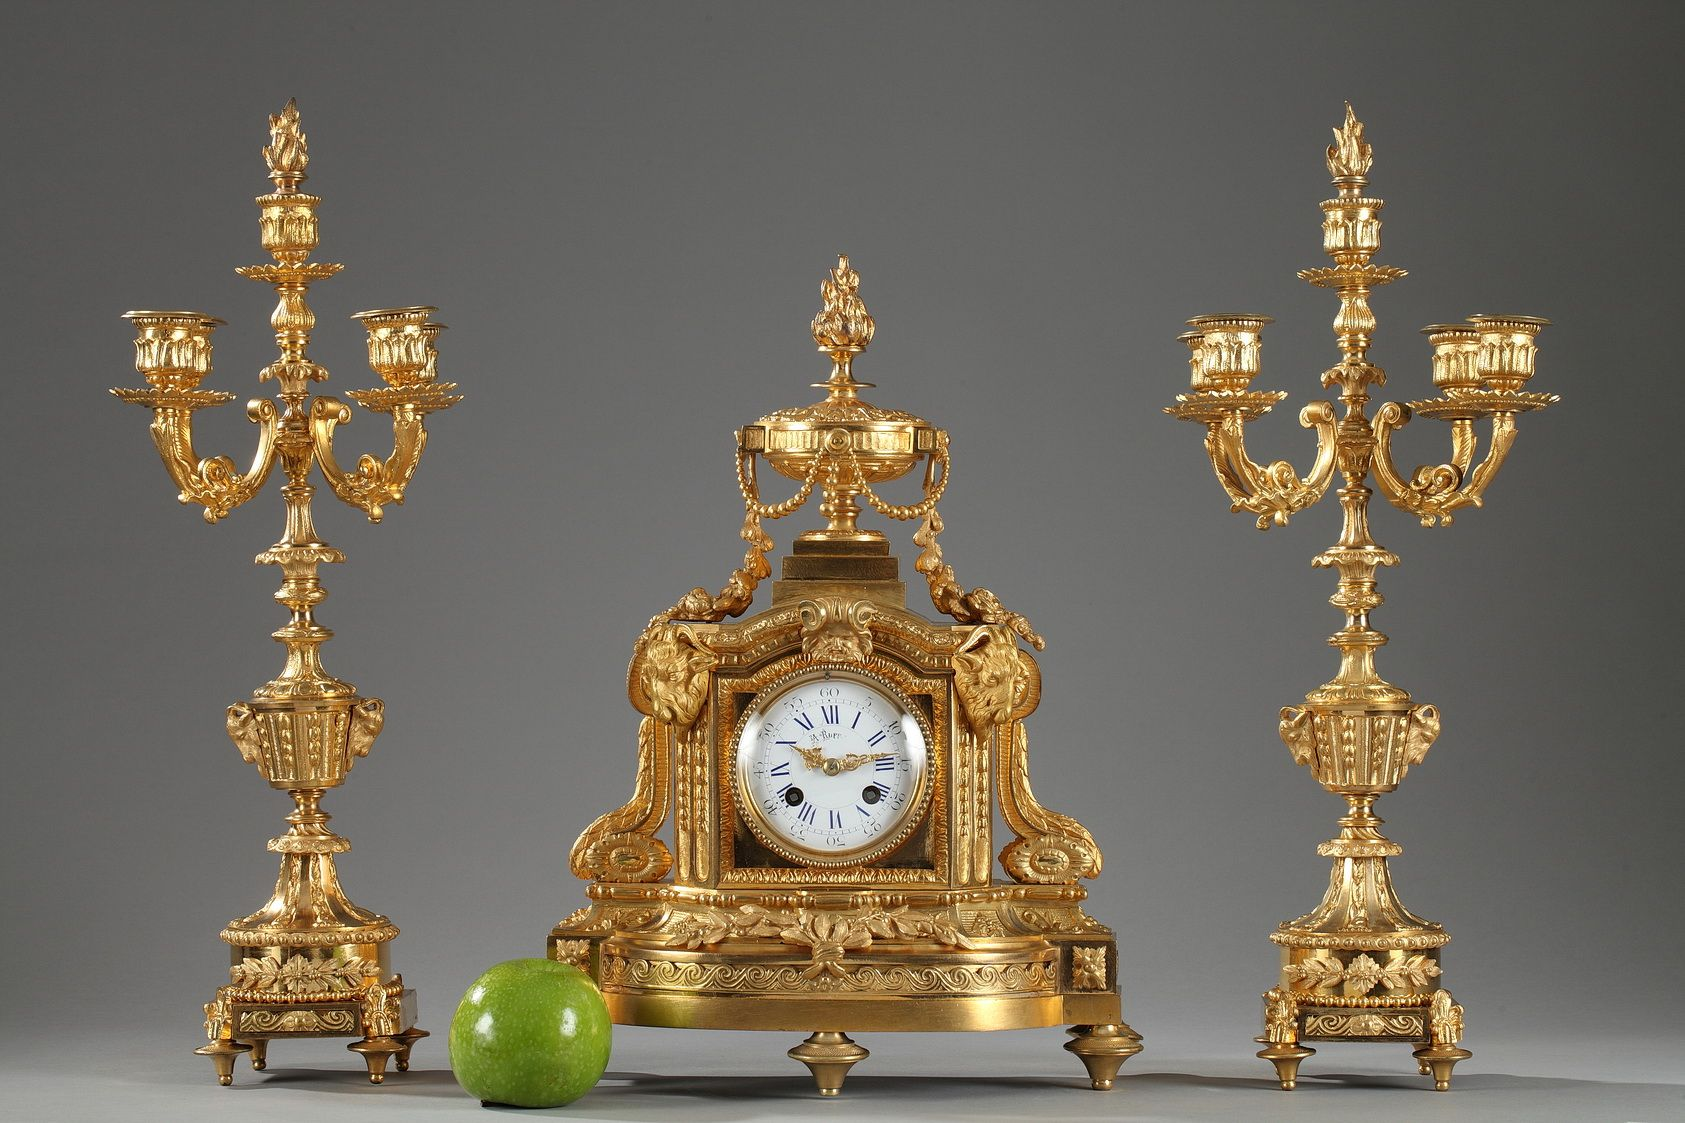 A gilt bronze set in Louis XVI style richly chiseled with ram's heads, foliages and garlands of flowers, composed of a mantel clock and two candlesticks. The white enameled...